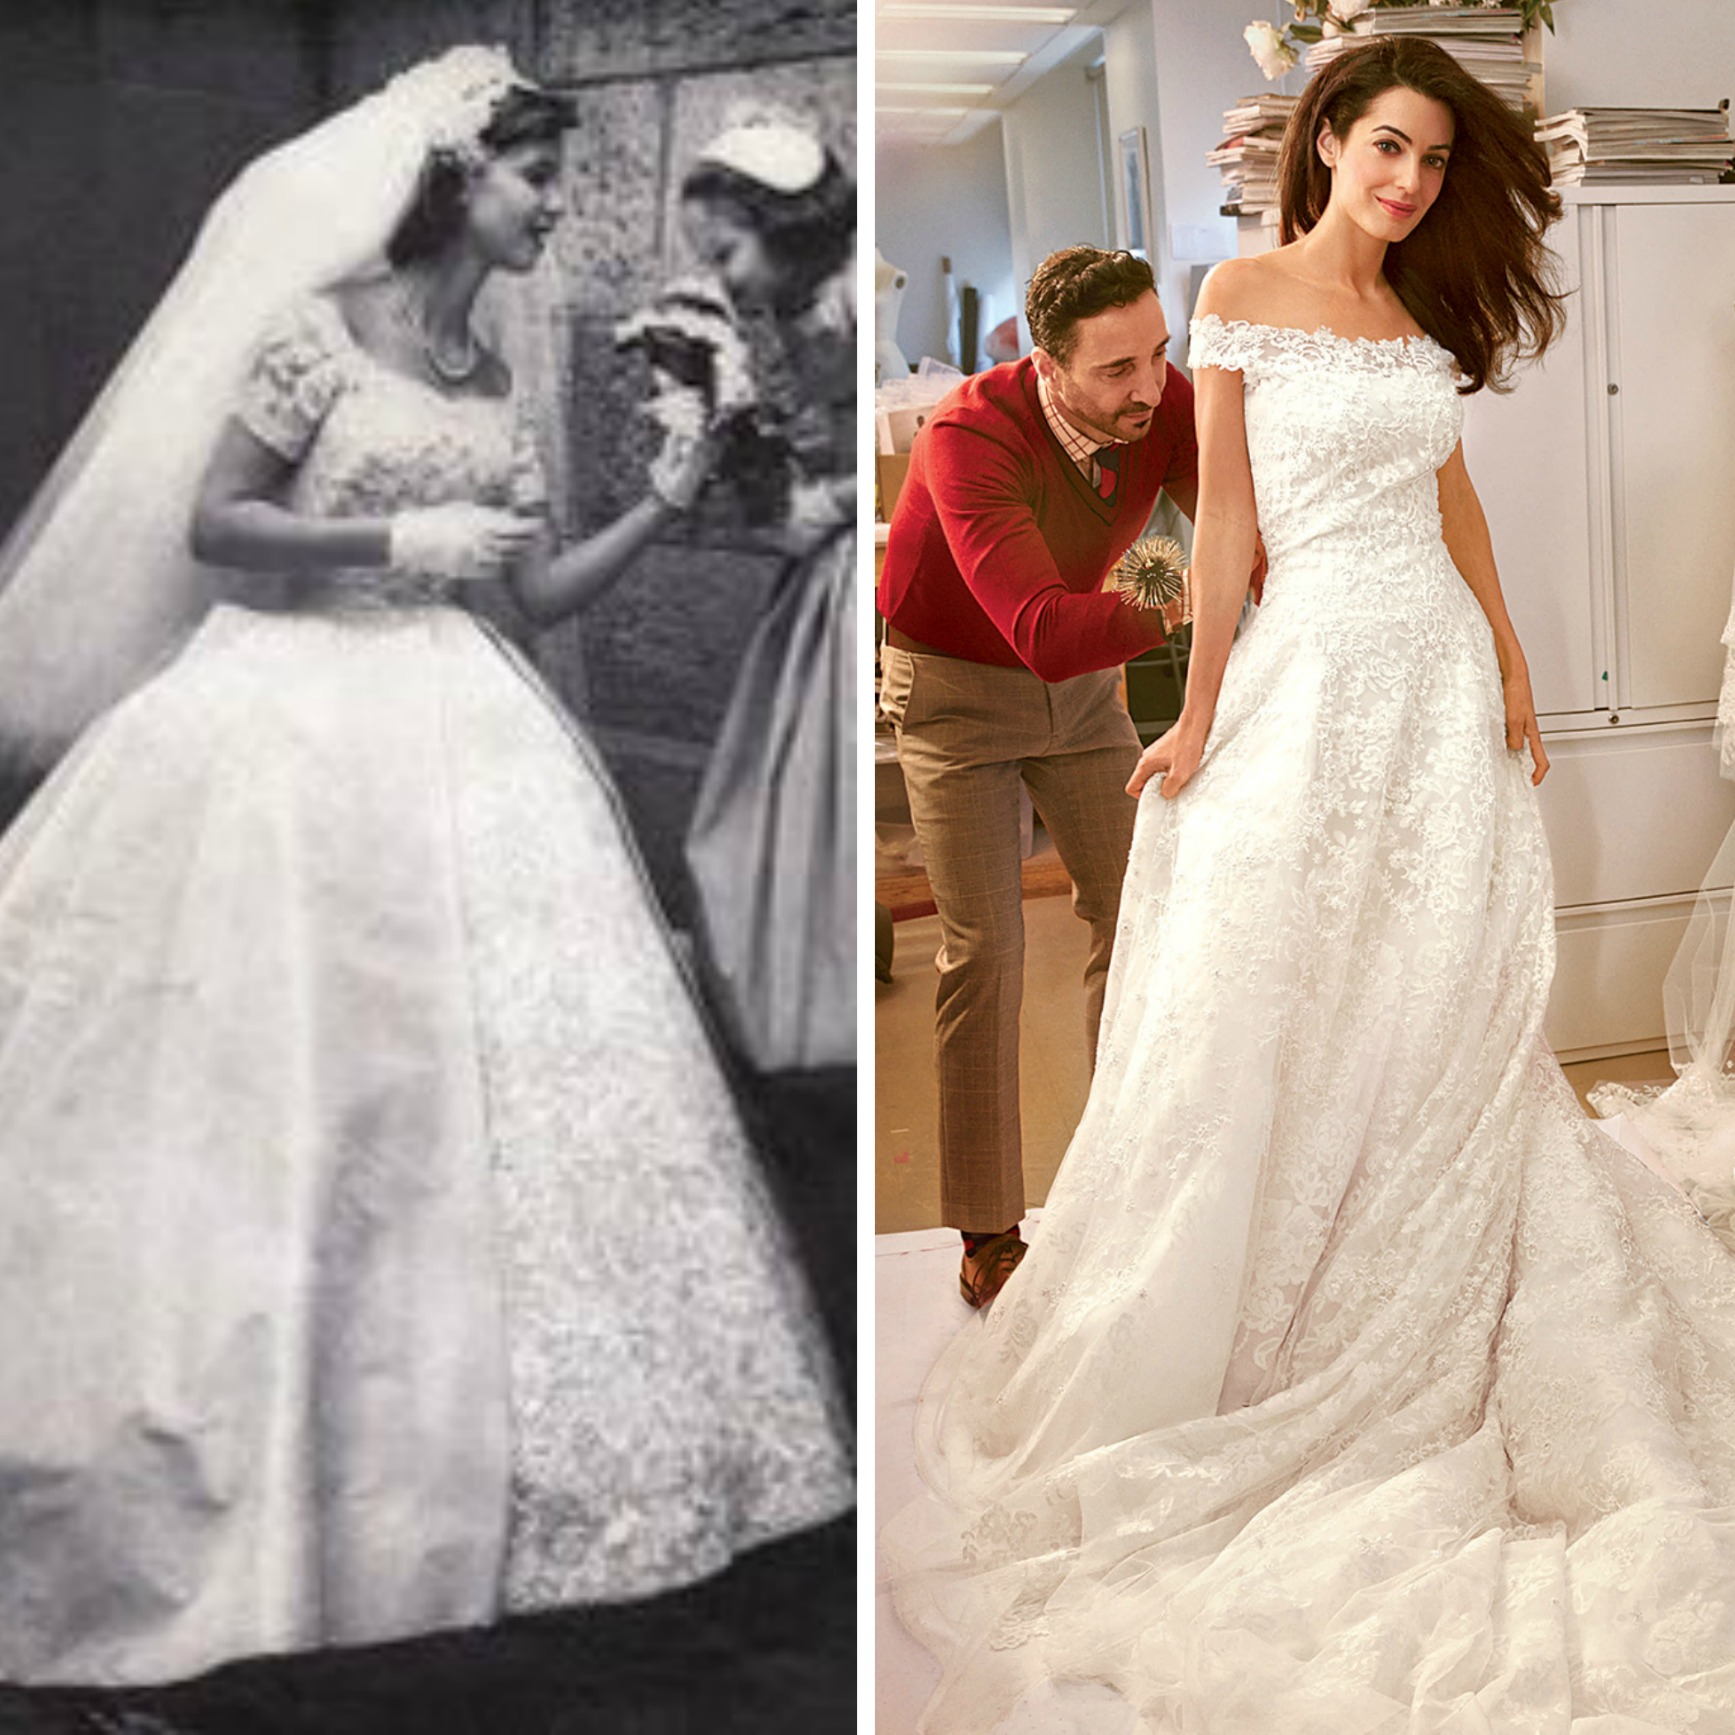 From left to right: 50's Bride, and Amal Alamuddin at her Oscar de la Renta dress fitting.